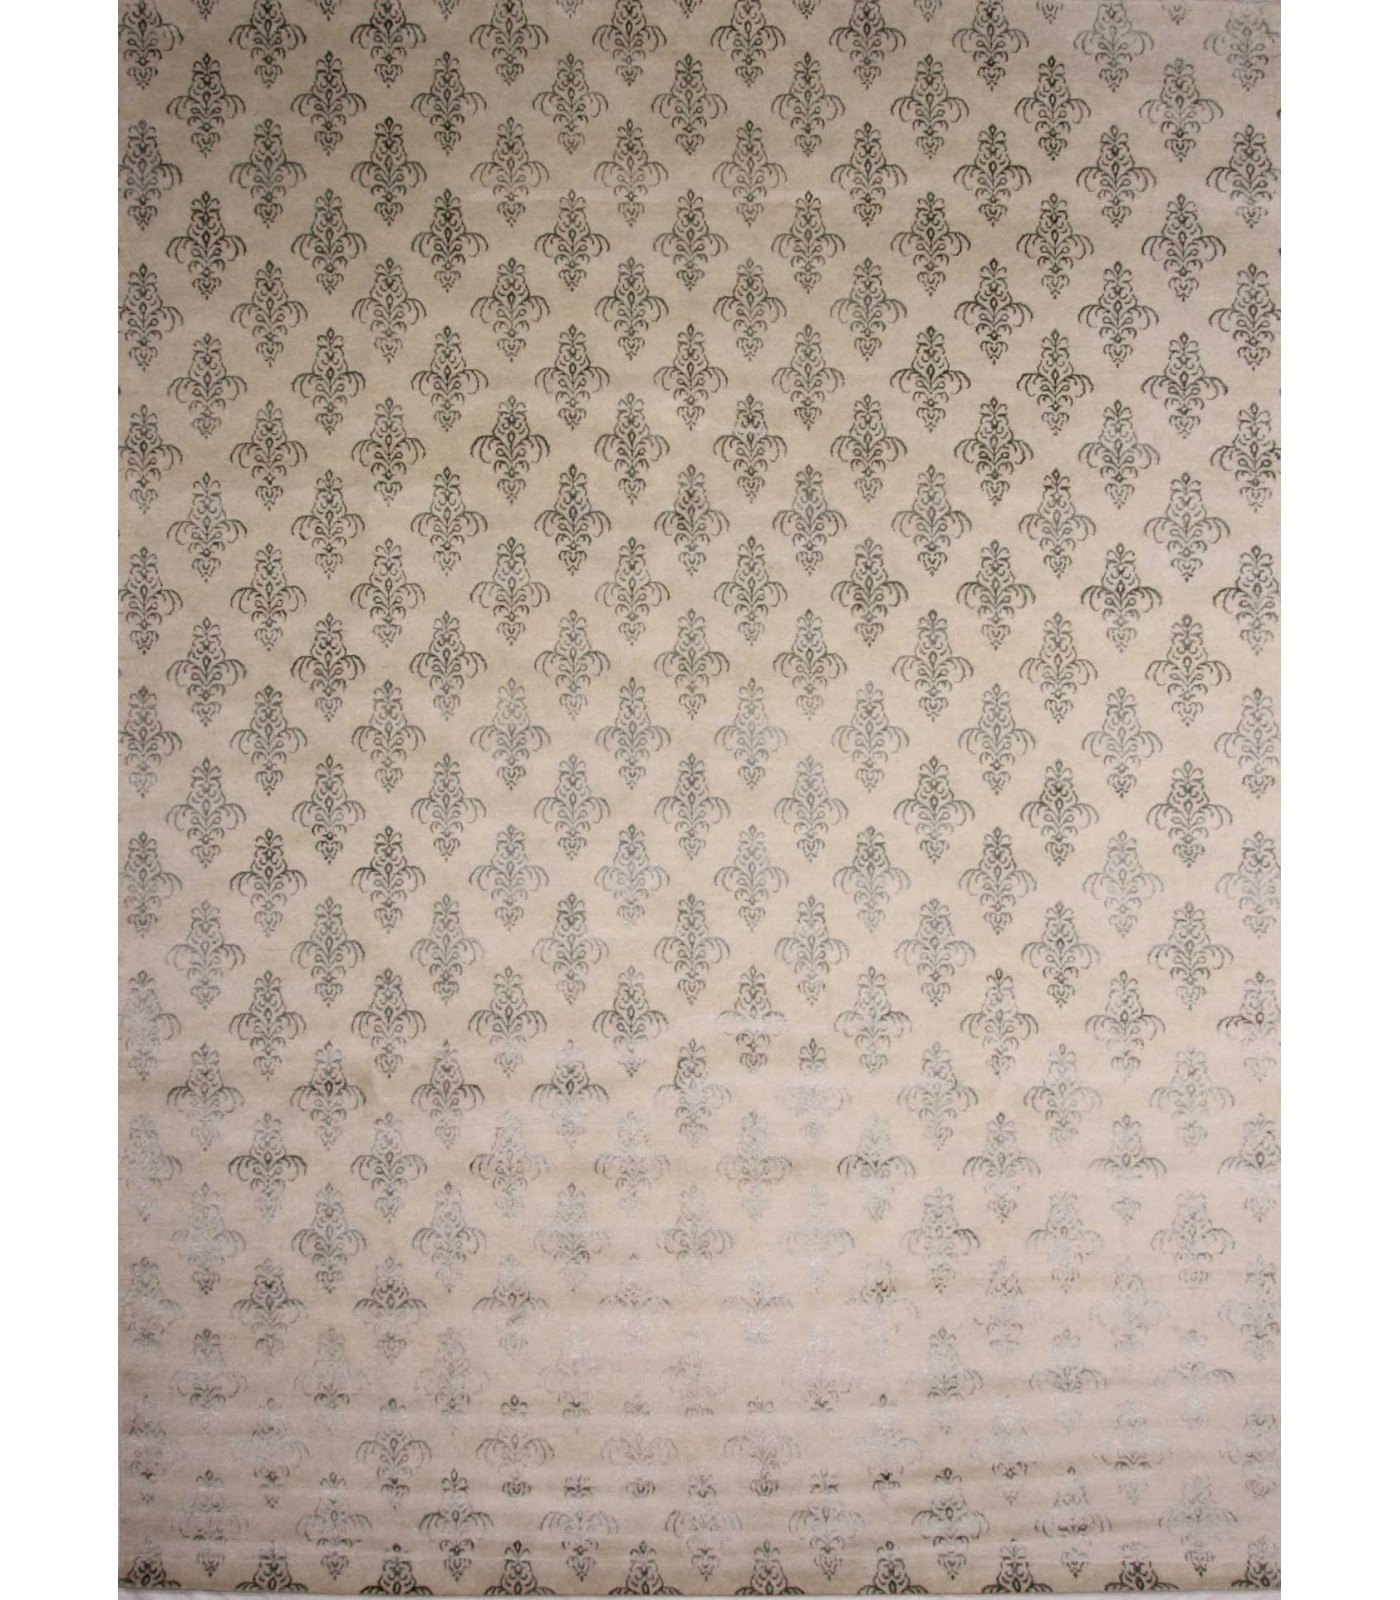 Rugs Online Sale 32117 Contemporary Wool Rugs Nj Contemporary Rugs Nj Indian